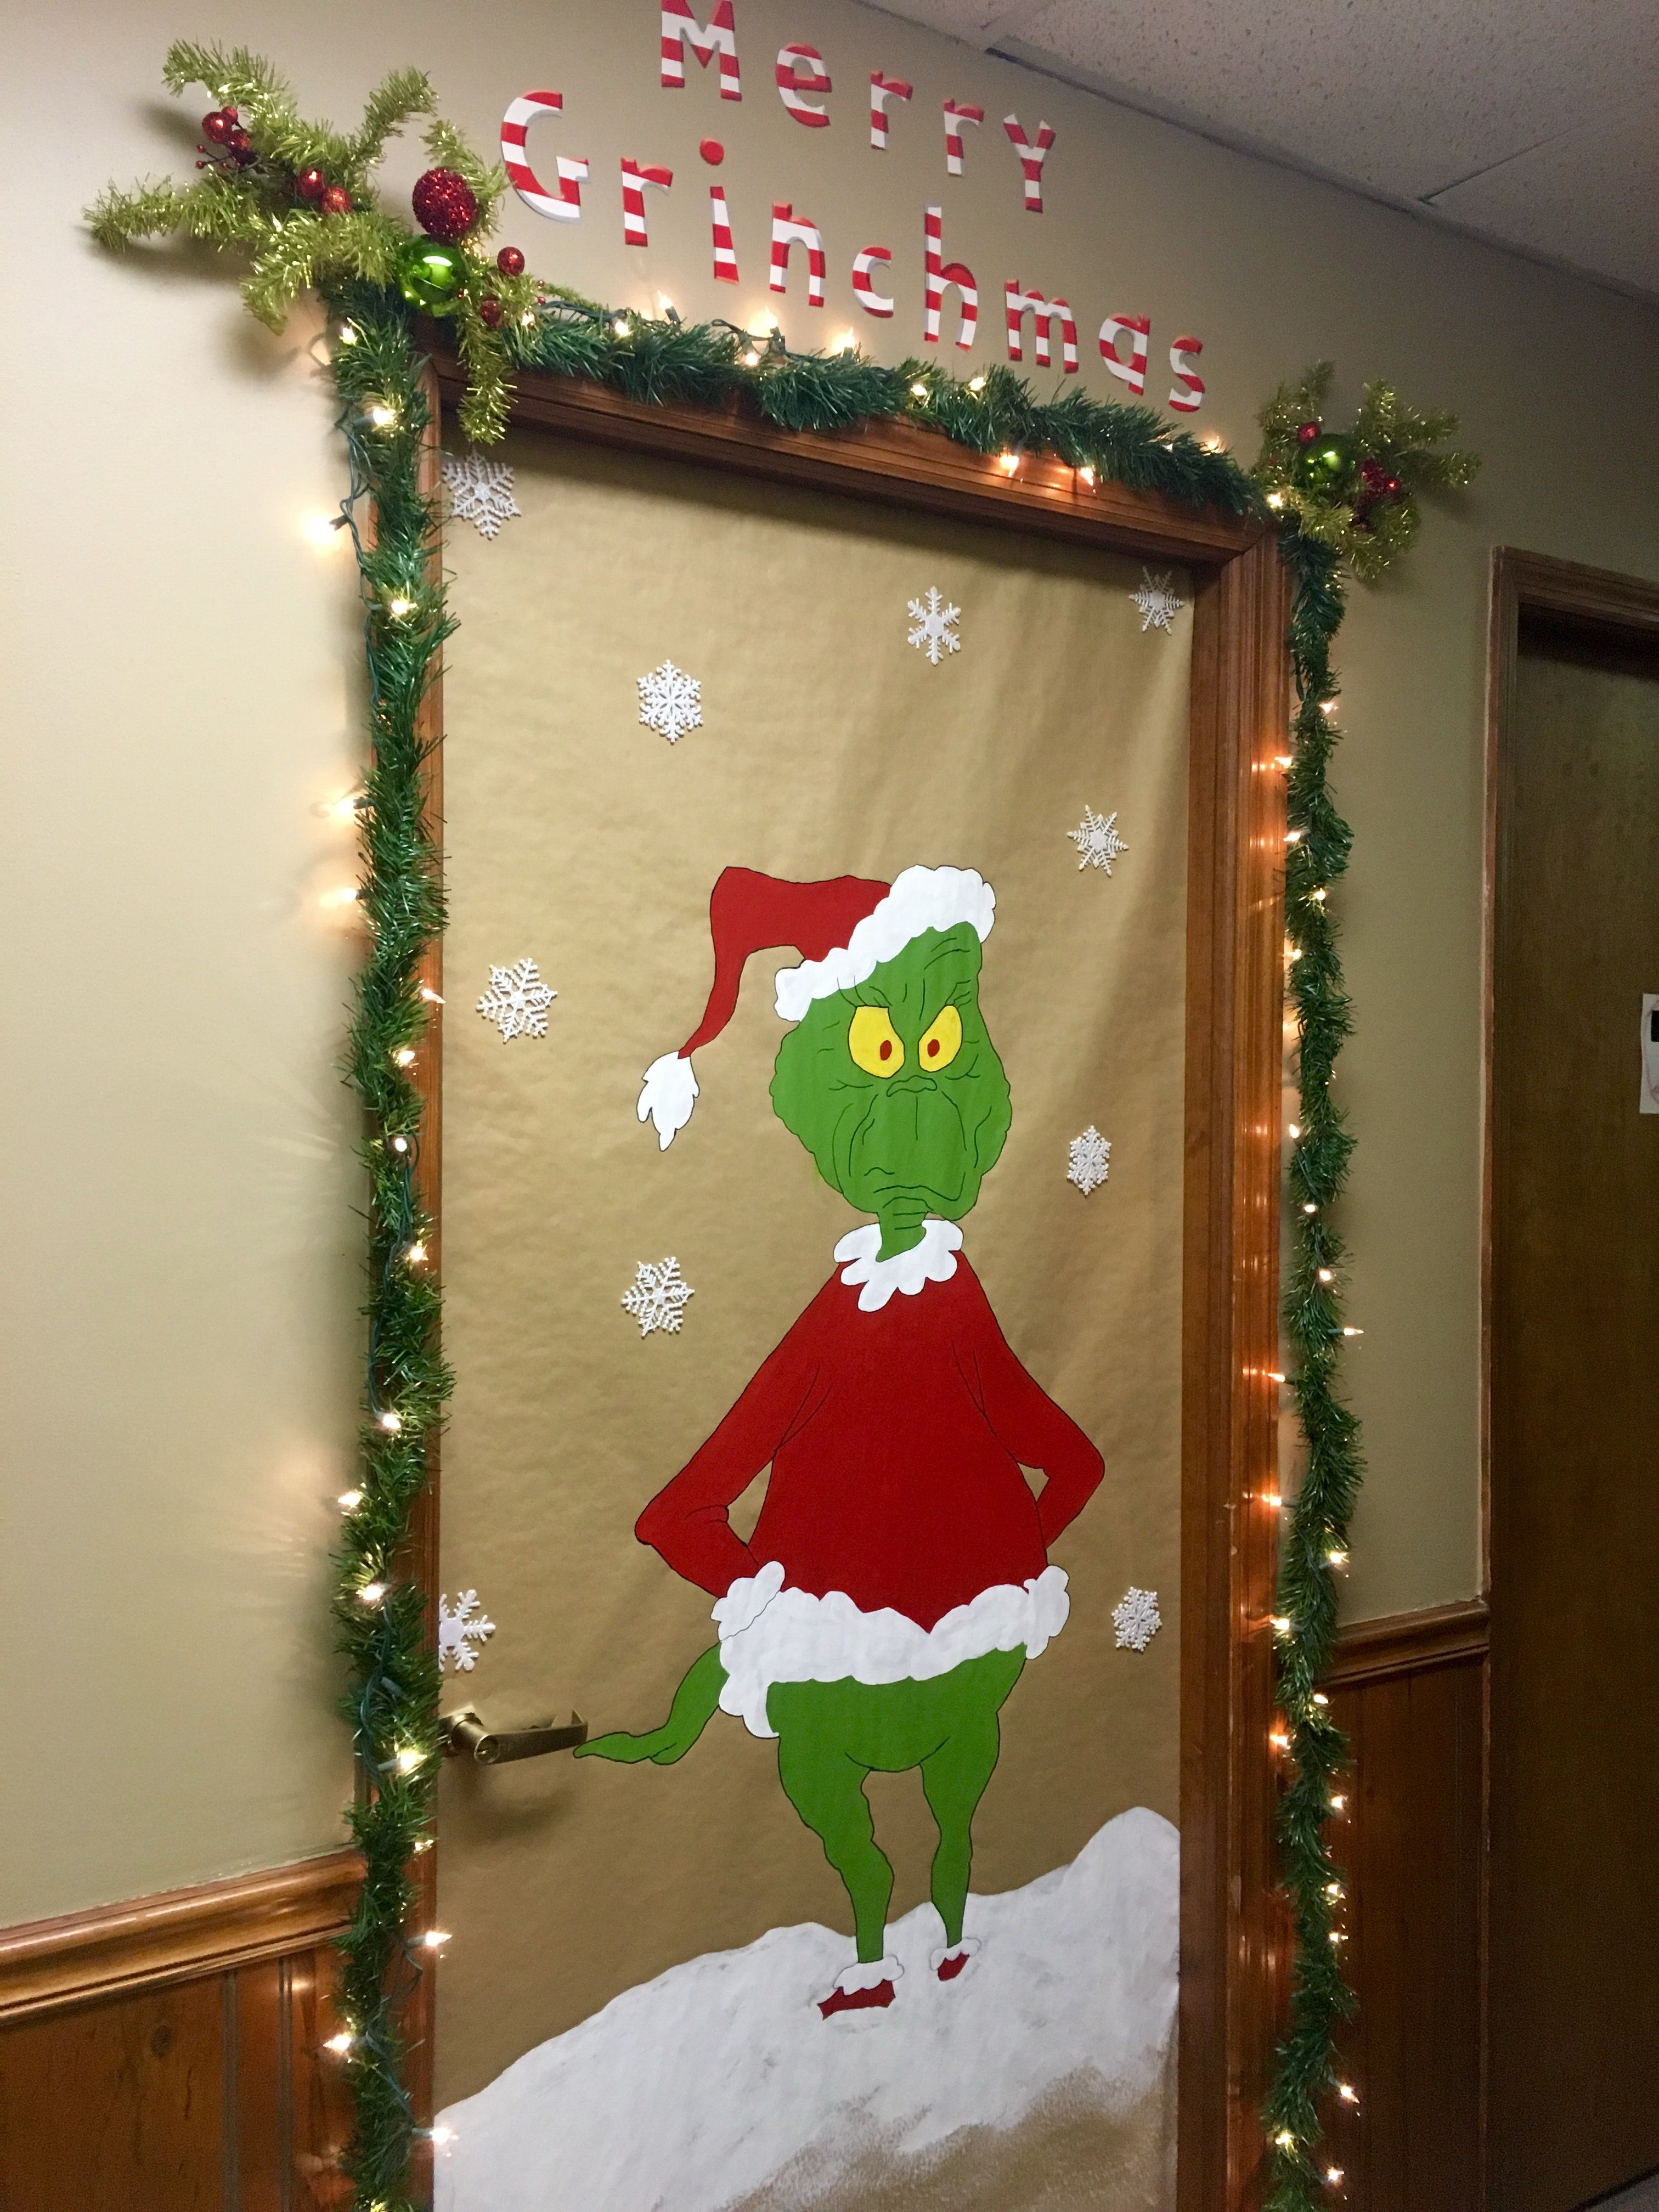 The Grinch Christmas Door Decorating Contest I Used A